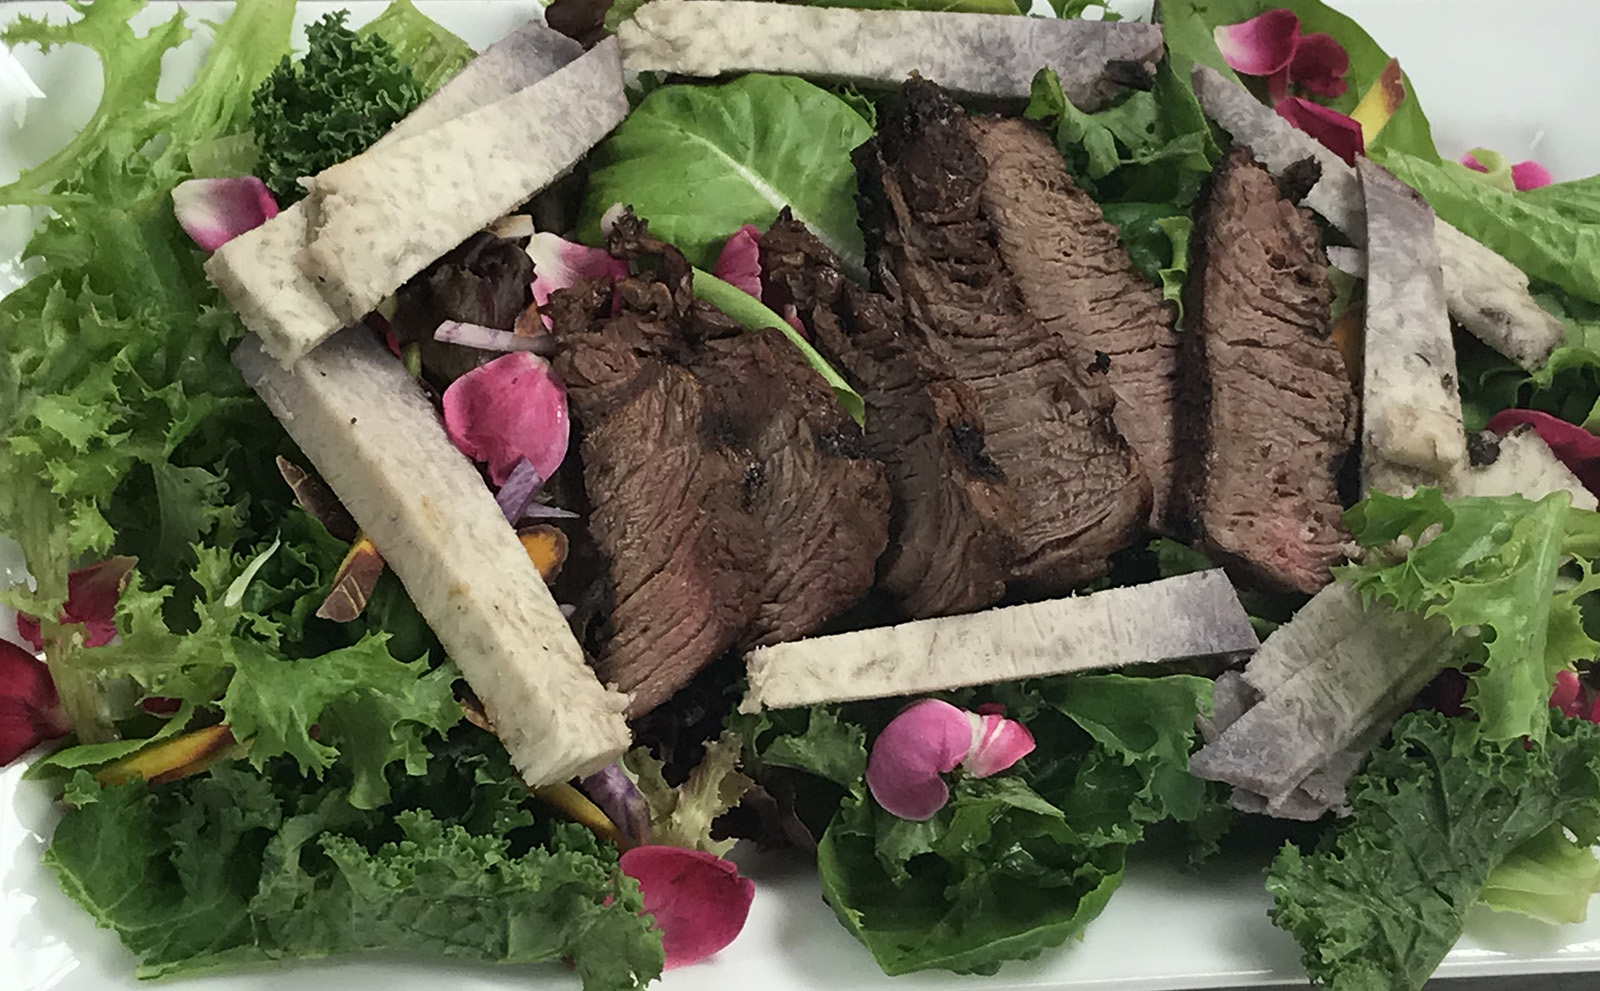 <p>The Roots Cafe focuses on healthy entrees featuring mostly local ingredients such as this organic salad with steak and kalo pa'a. The cafe is also used for culinary training, discussion groups, speaker engagements, film nights and cultural celebrations.</p>